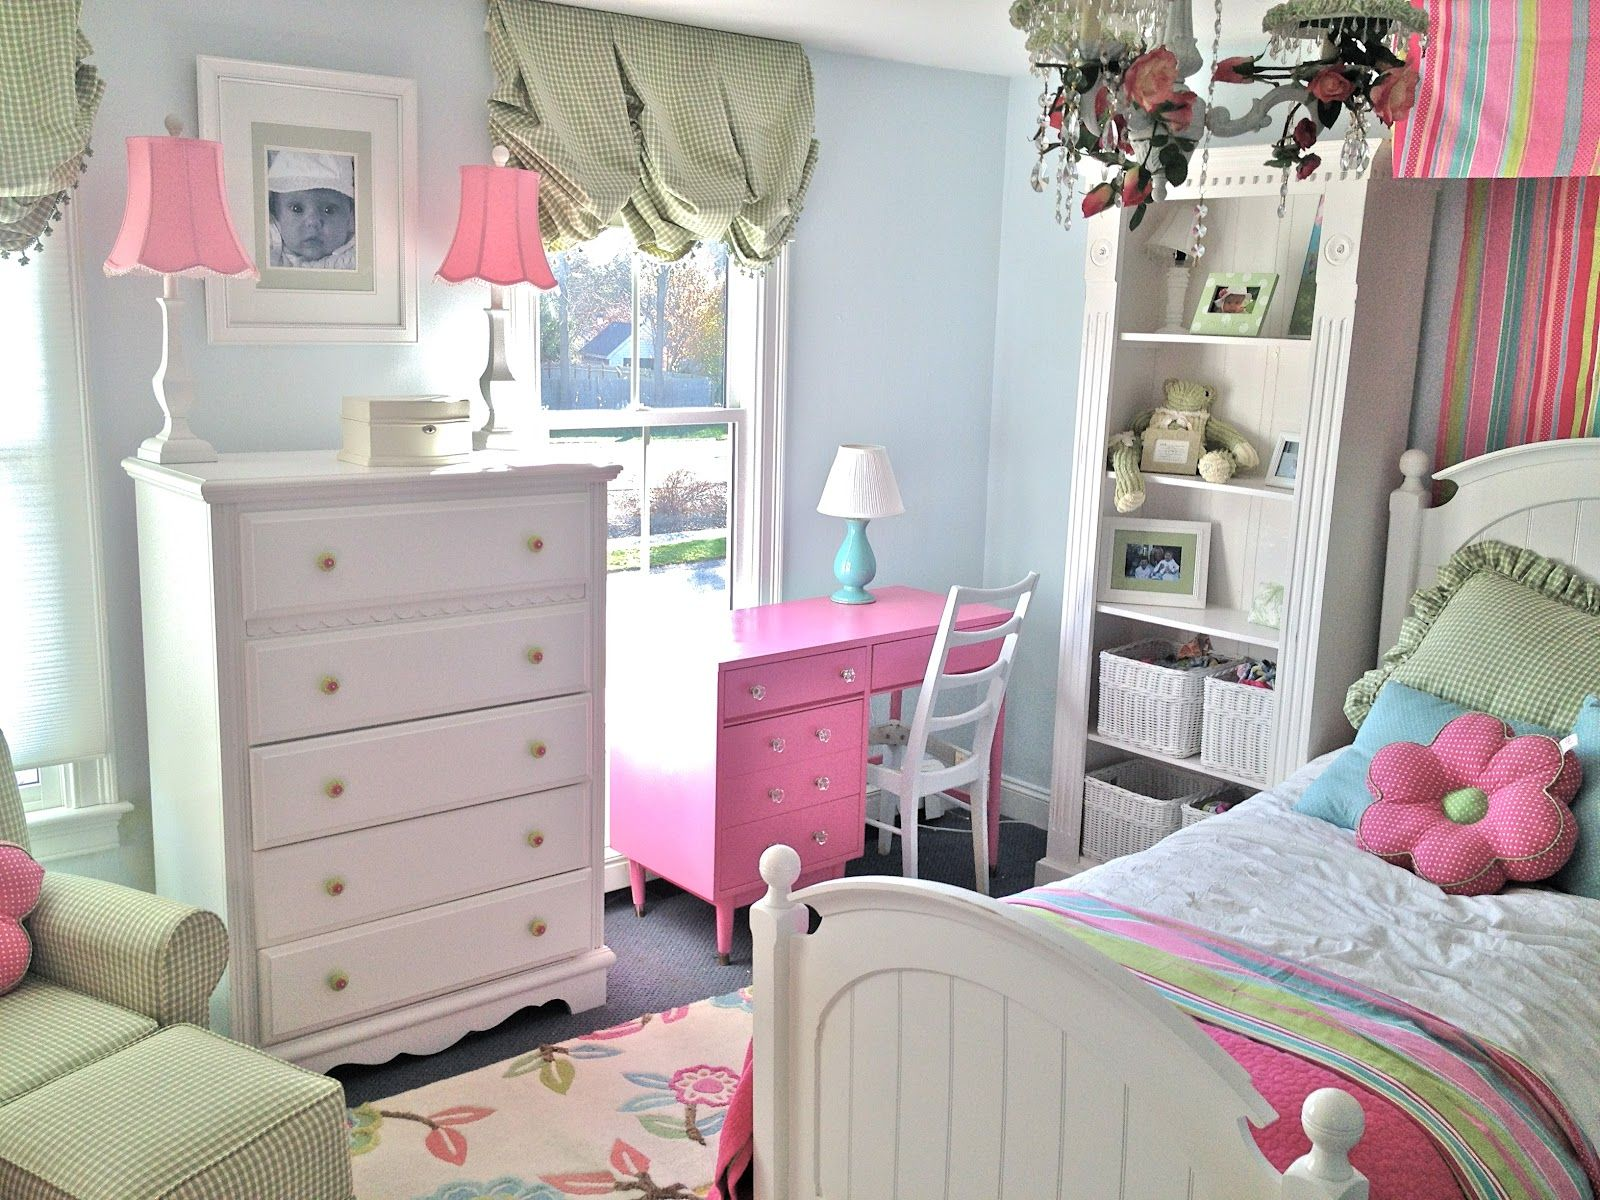 Bedroom decor ideas for girls - Beautiful Bedroom Decor For Girls With Huge Cabinet Using Storage Idea Also Small Green Fabric Sofa